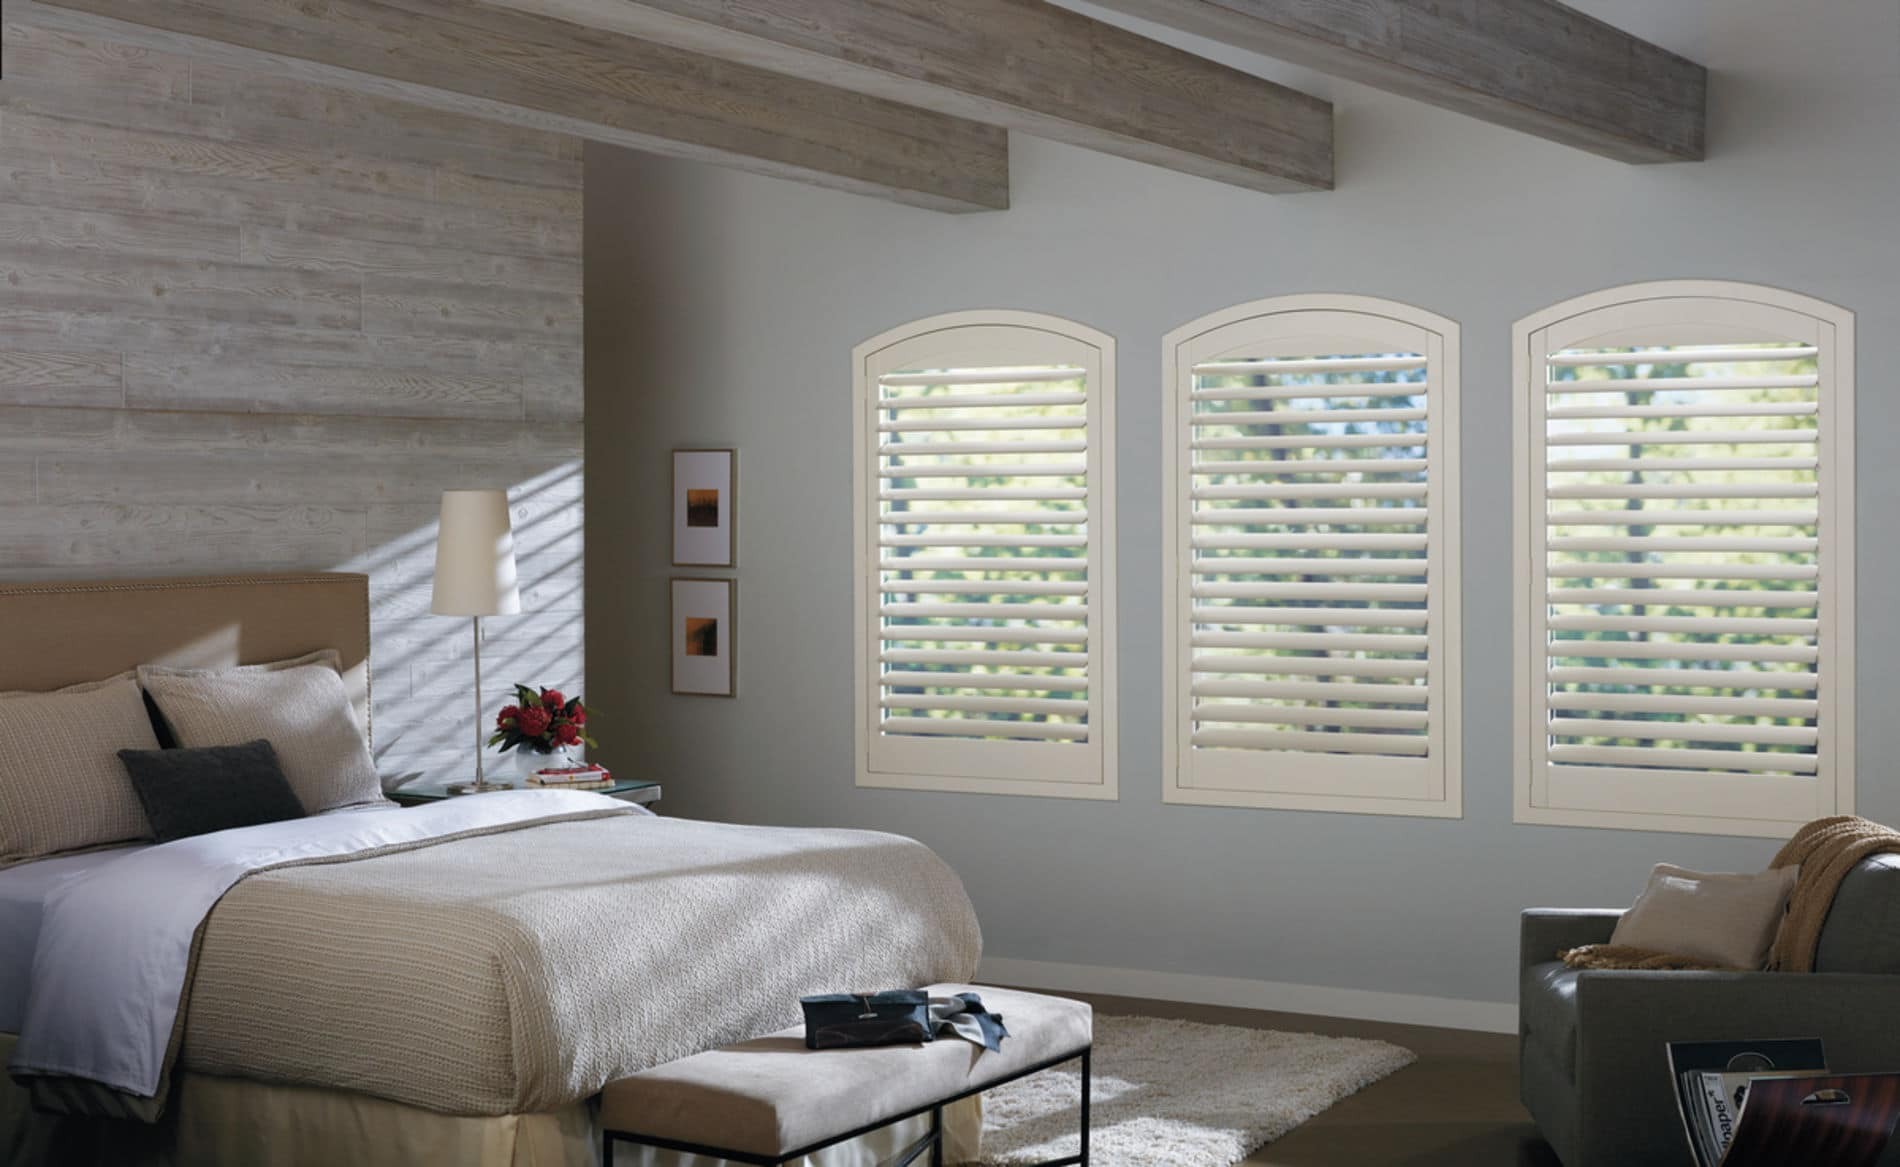 HunterDouglas by Shiretown Home Improvement Newstyle Hybrid Shutters, Fabric/Material: Hybrid